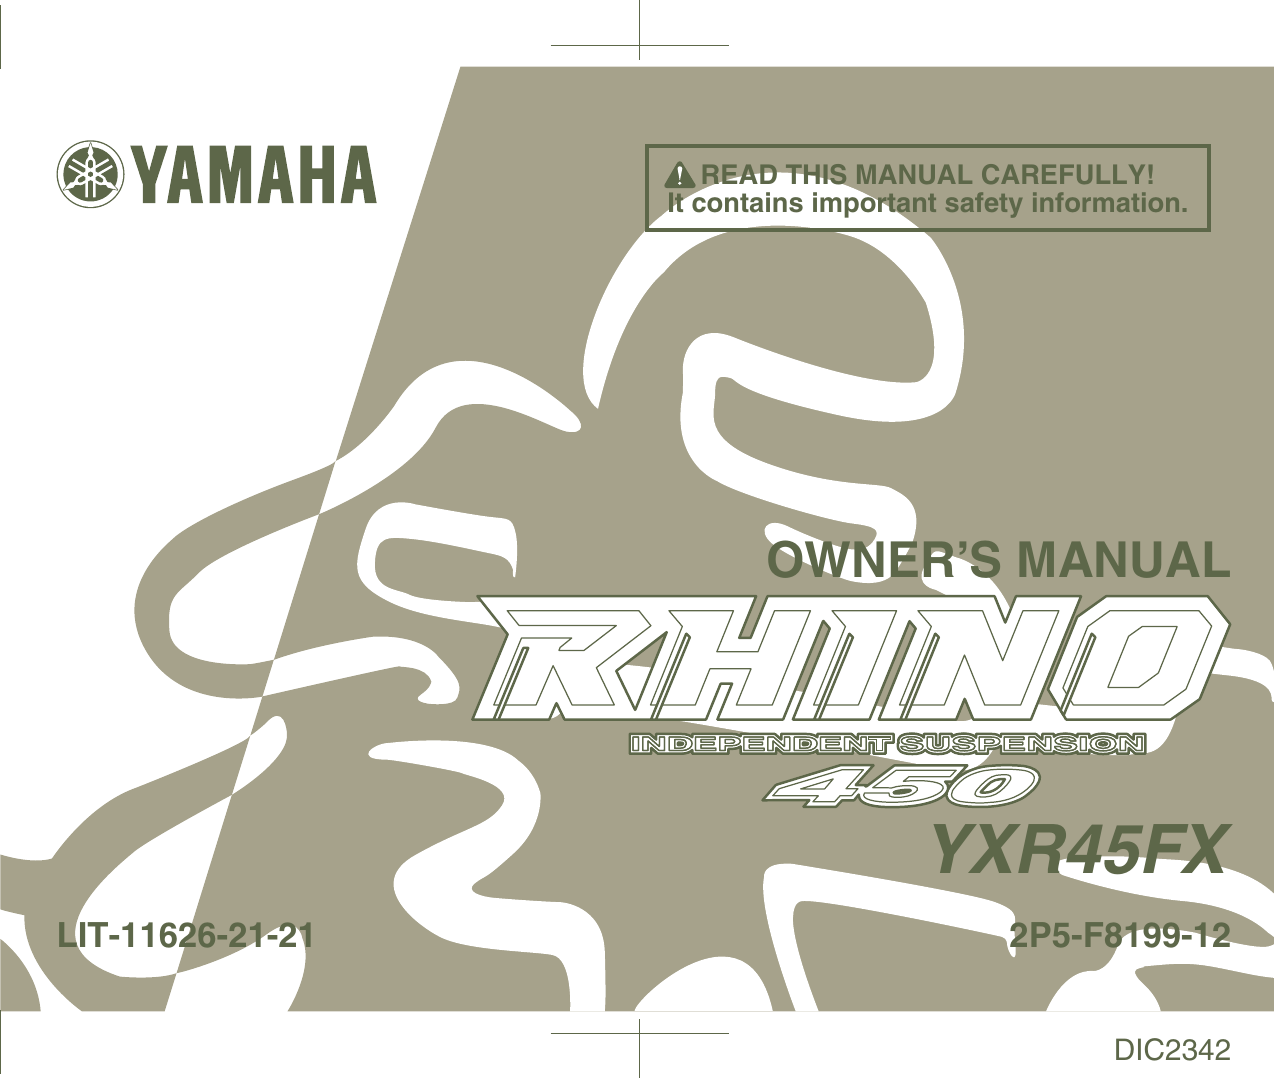 Yamaha Rhino 450 Owners Manual ManualsLib Makes It Easy To